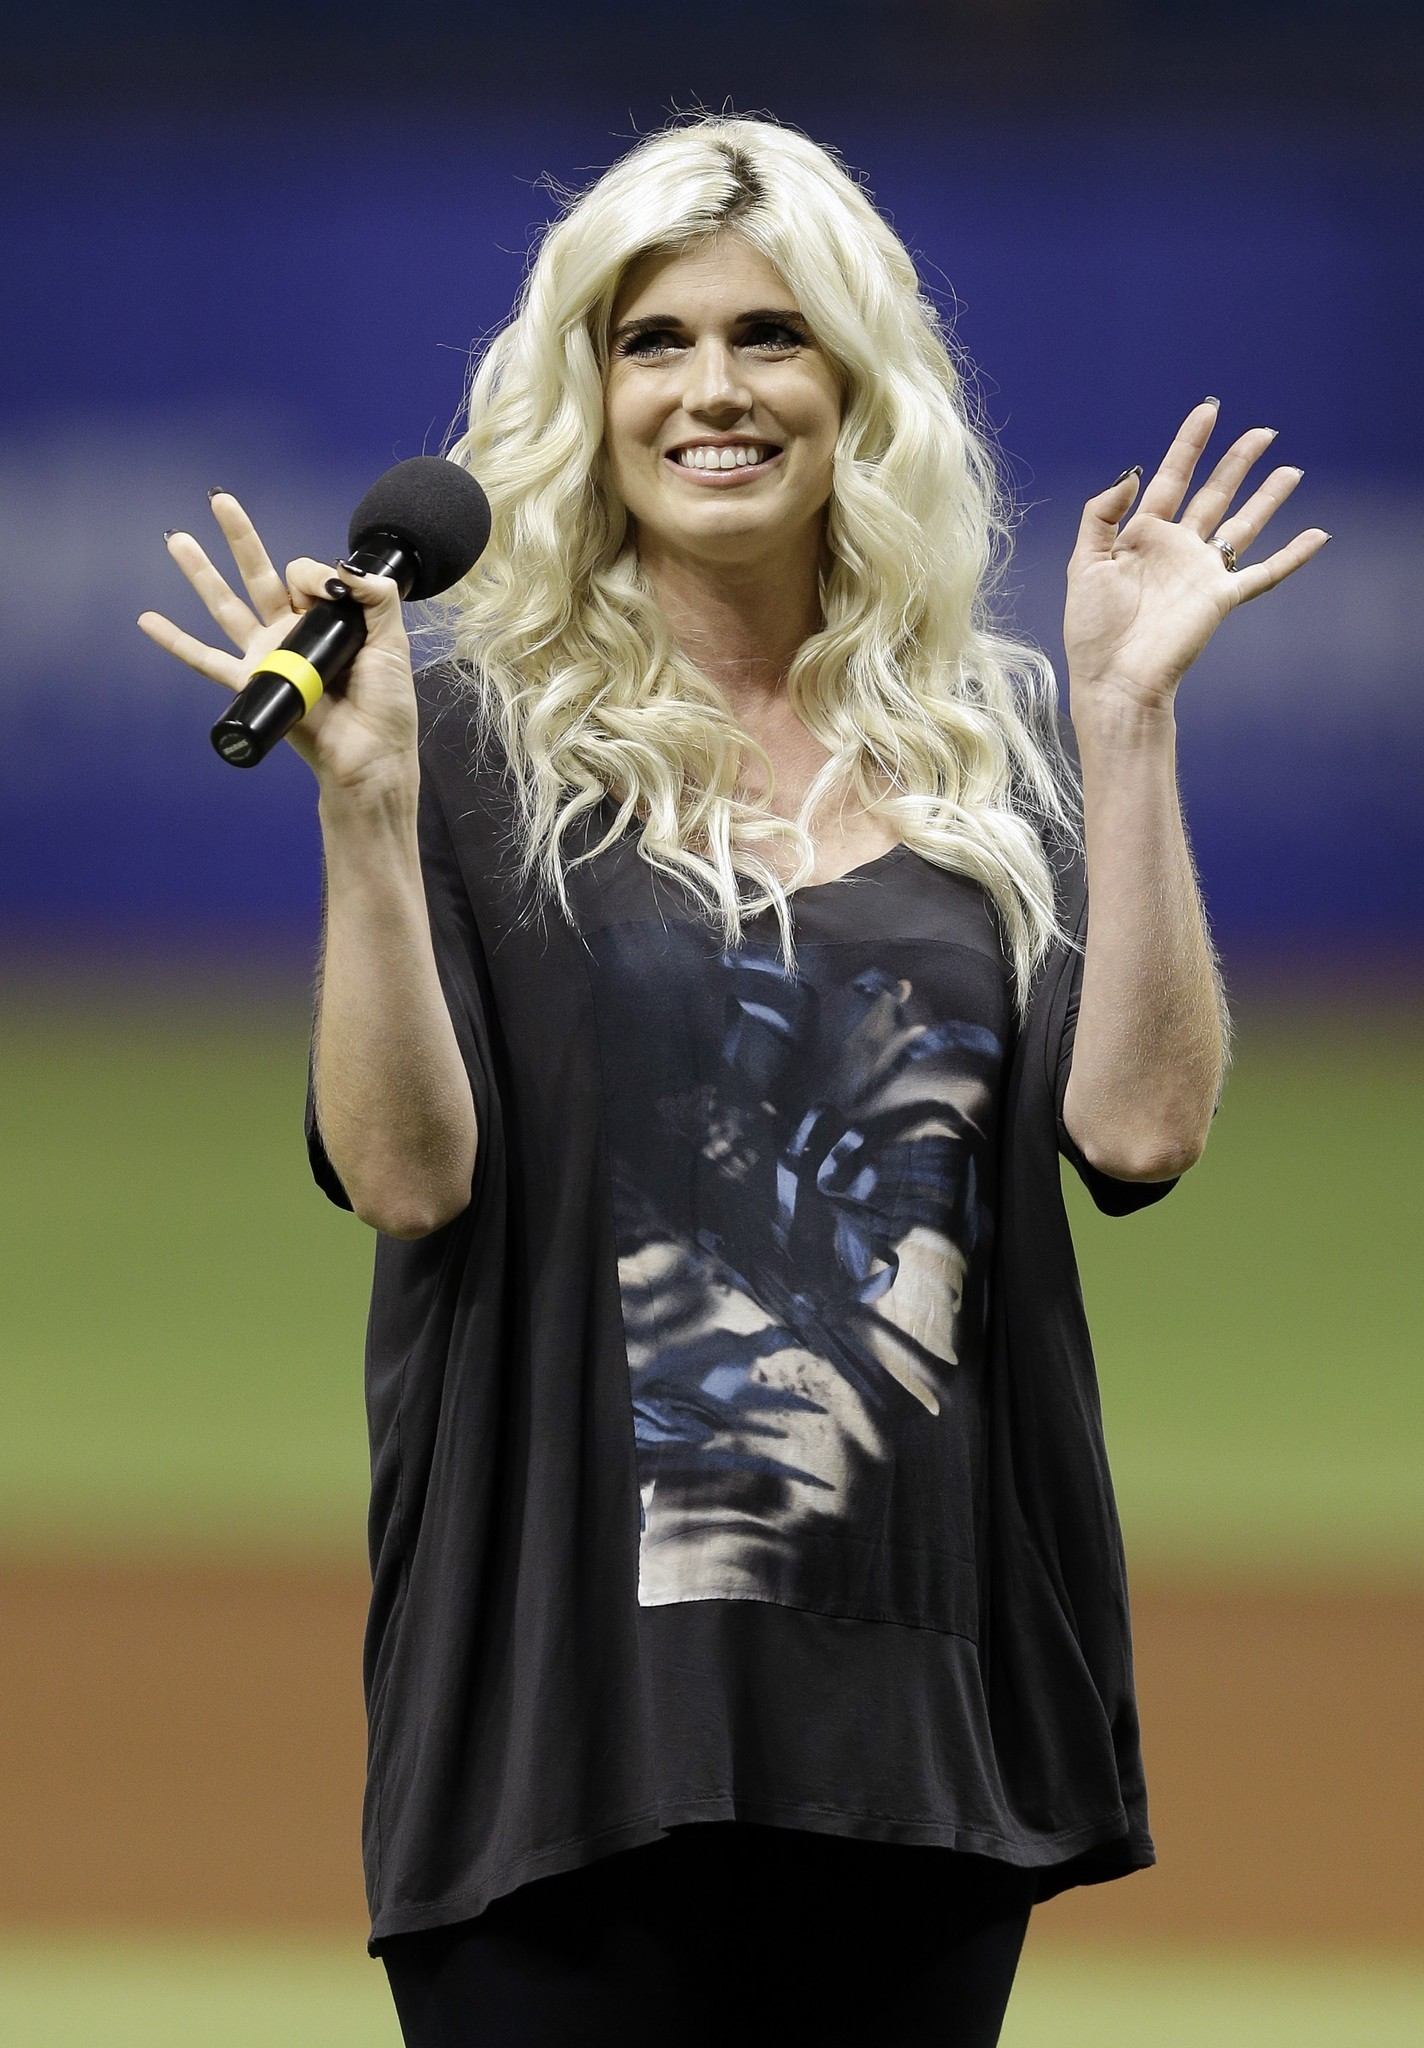 Singer Julianna Zobrist Bens Wife On The Cubs Walk Up